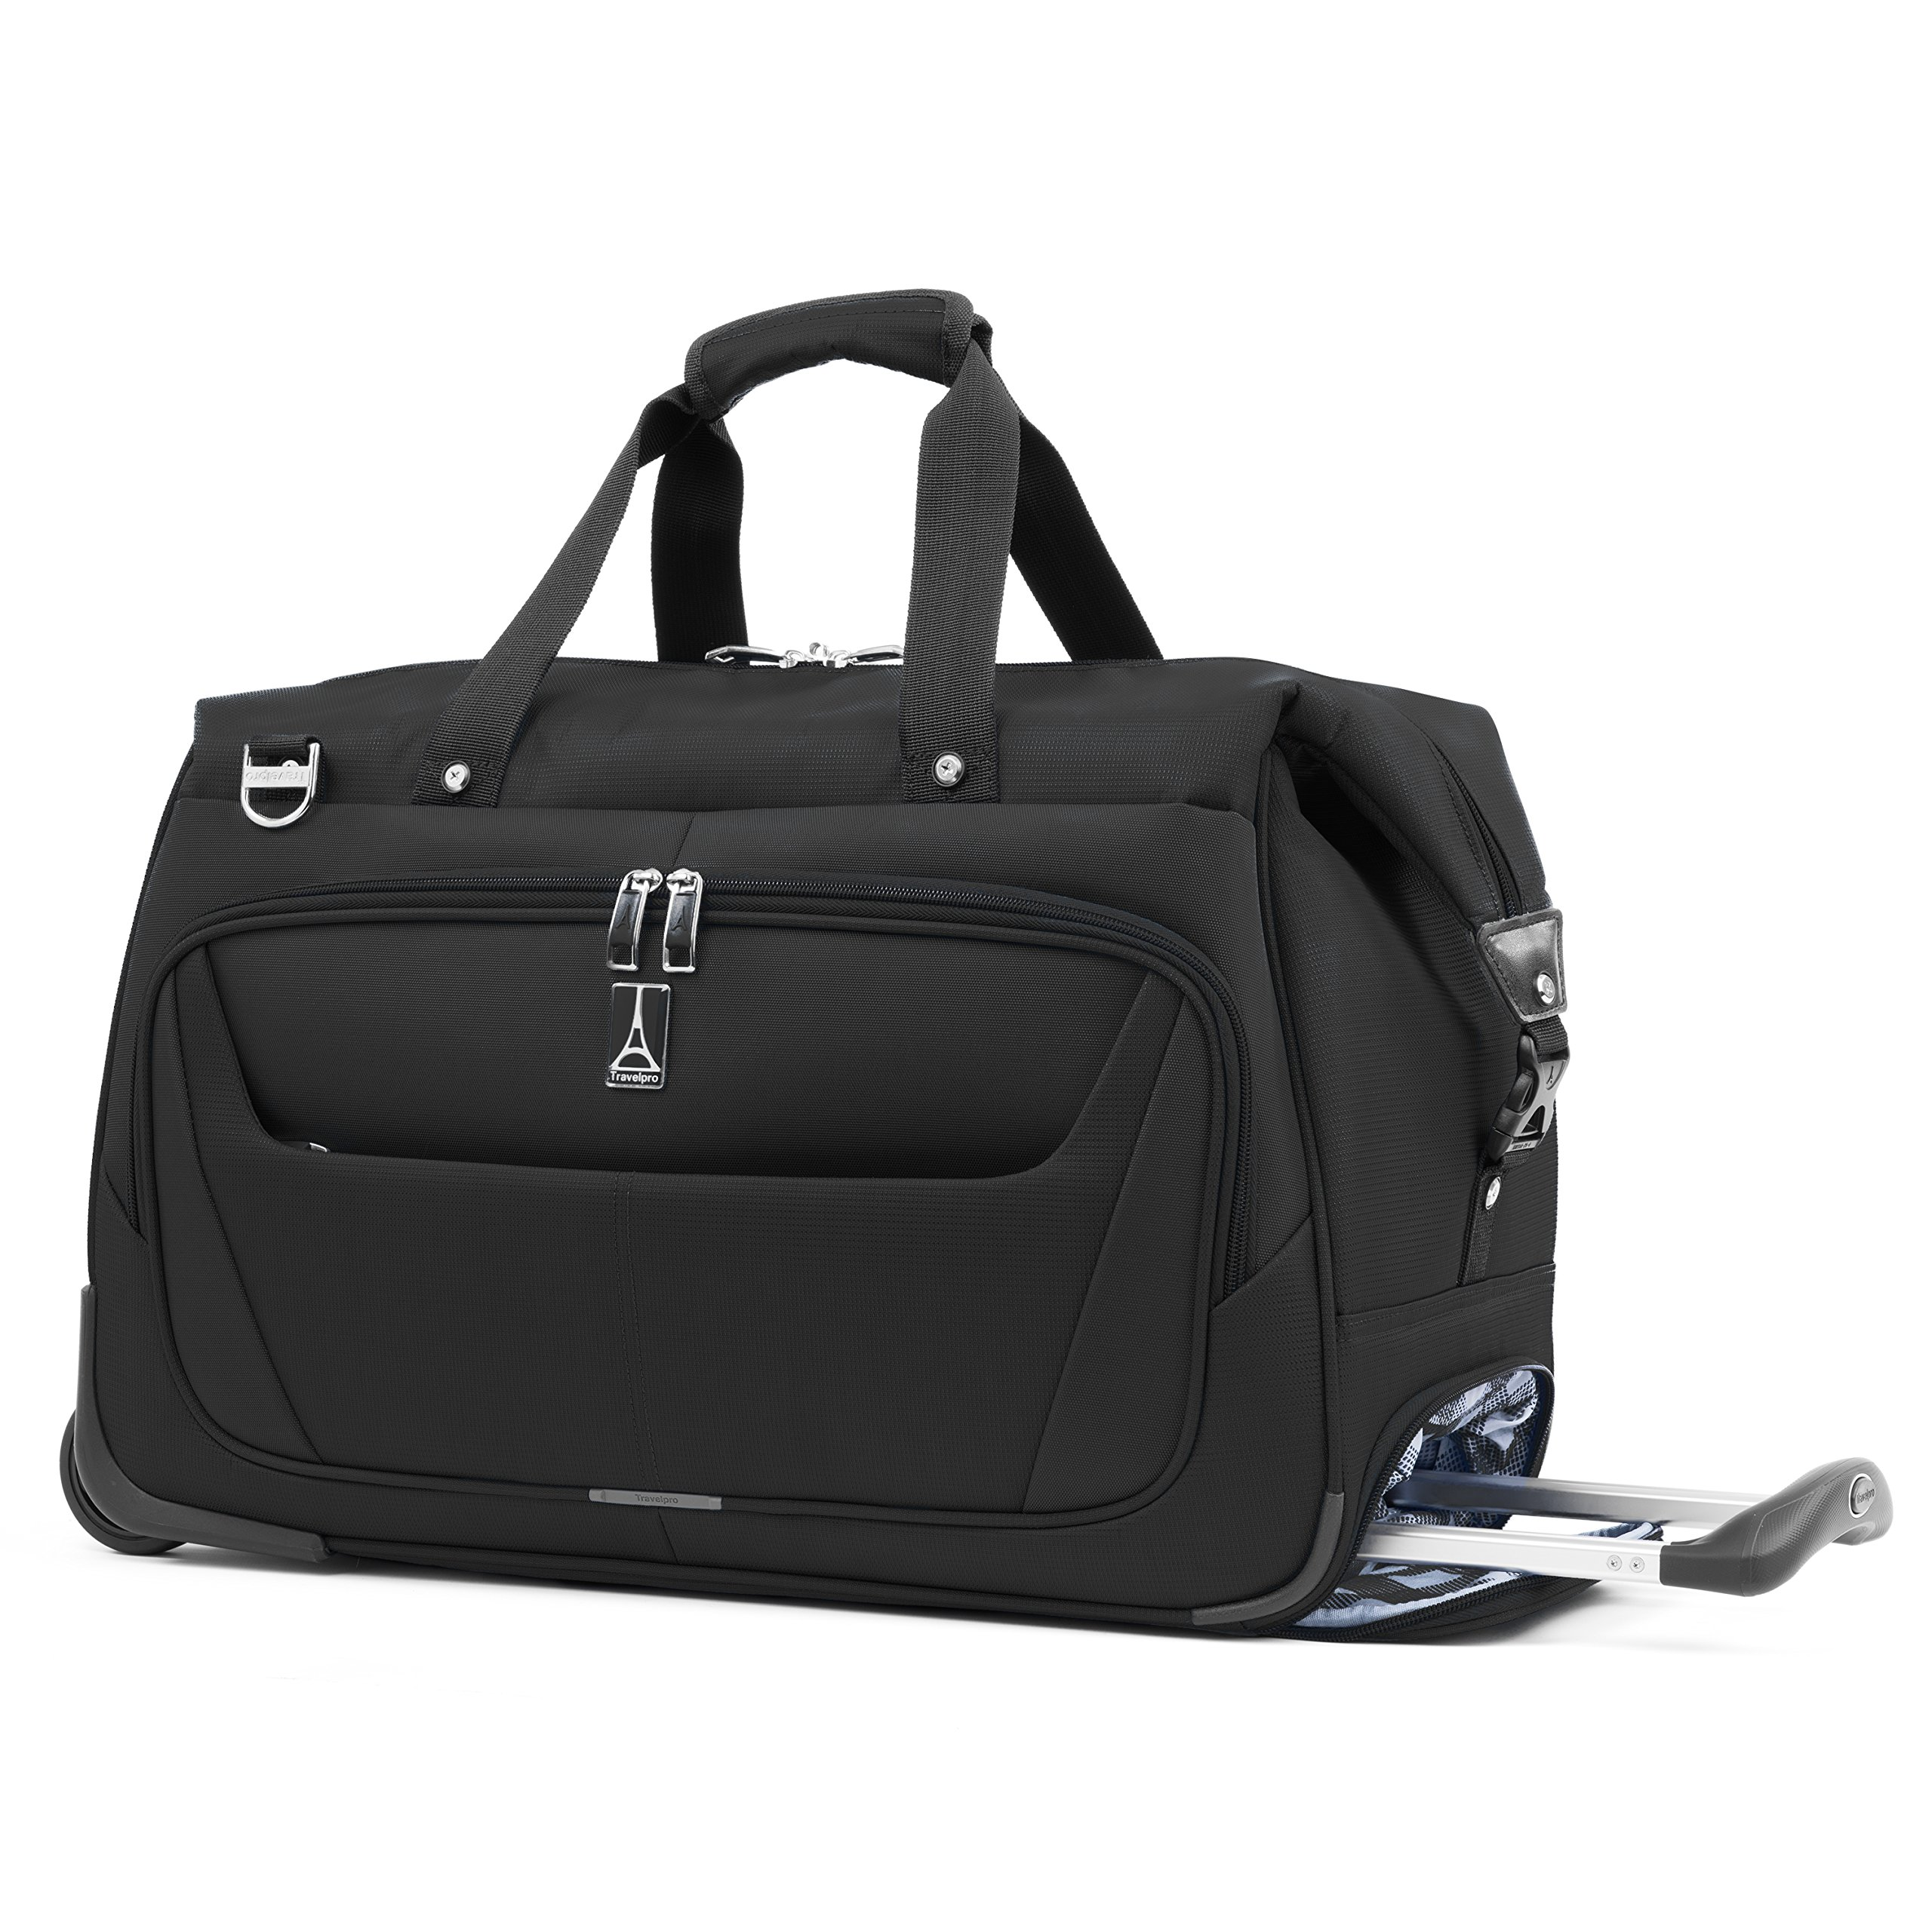 Travelpro Luggage Maxlite 5 20'' Lightweight Carry-on Rolling Duffel Suitcase, Black, One Size